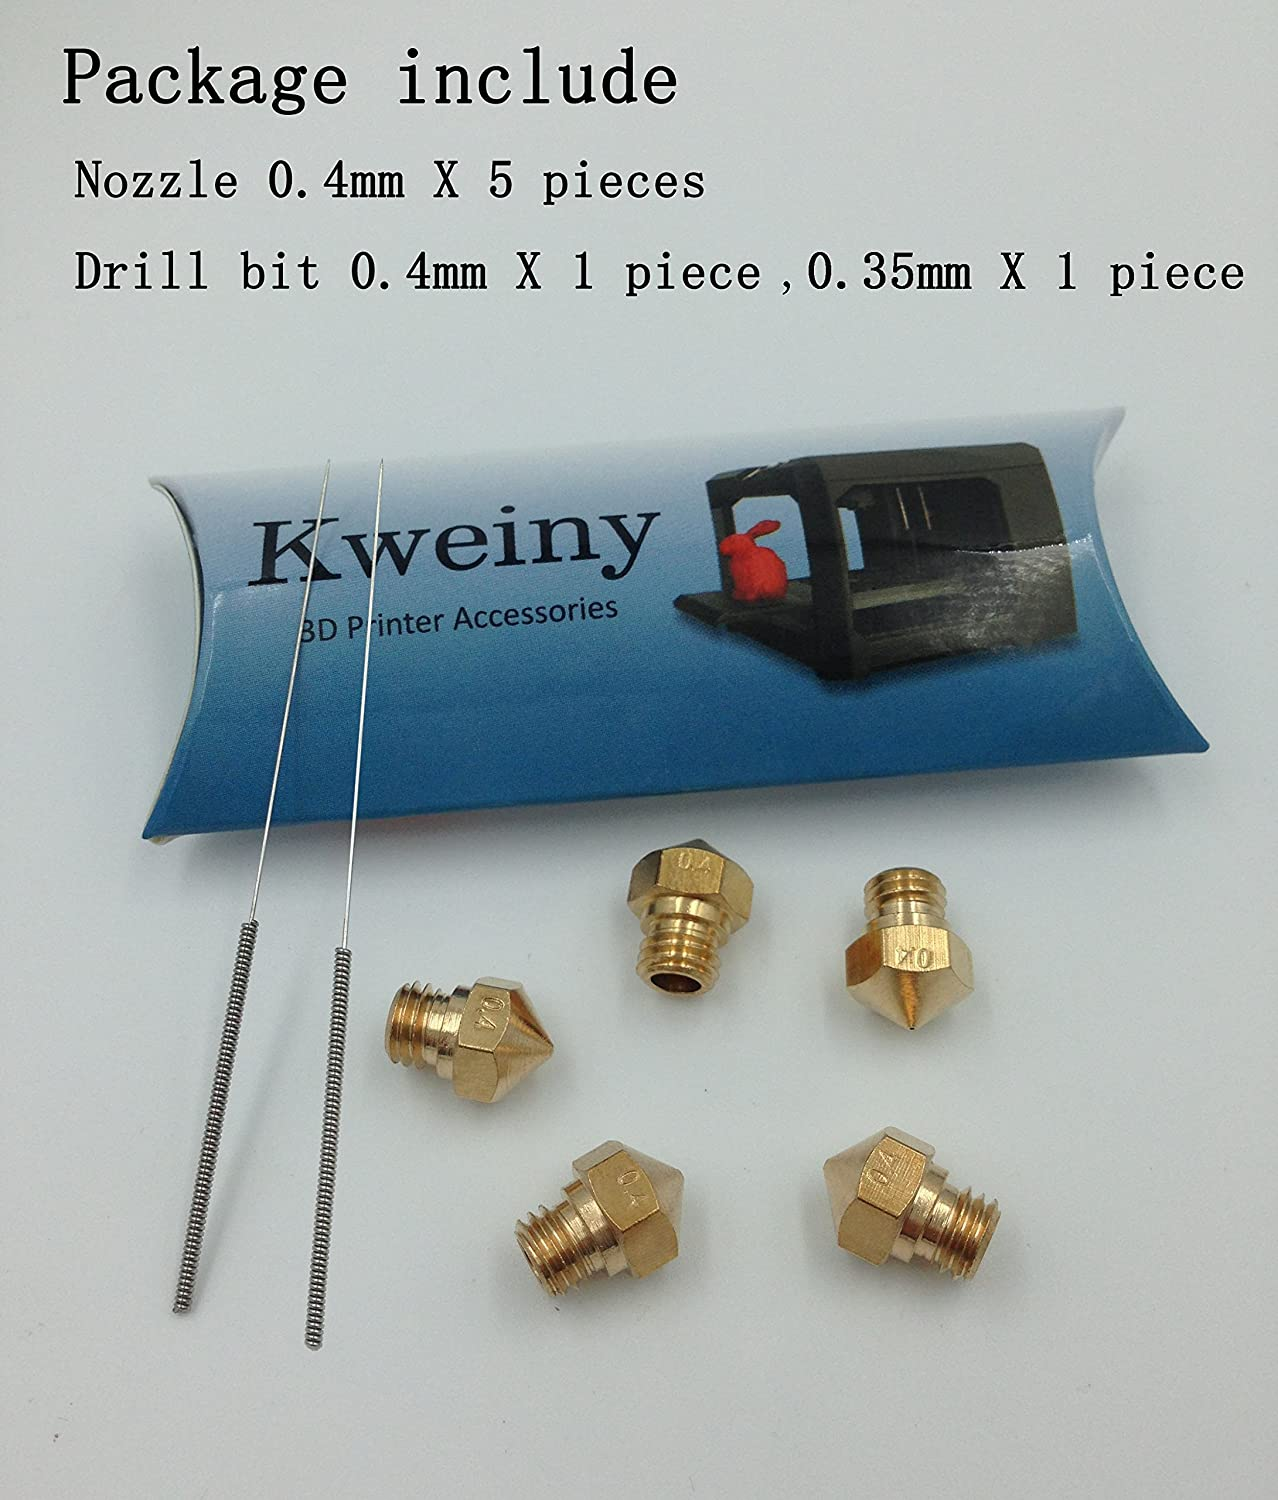 Amazon.com: Kweiny MK10 Hotend Kit para impresora 3D ...